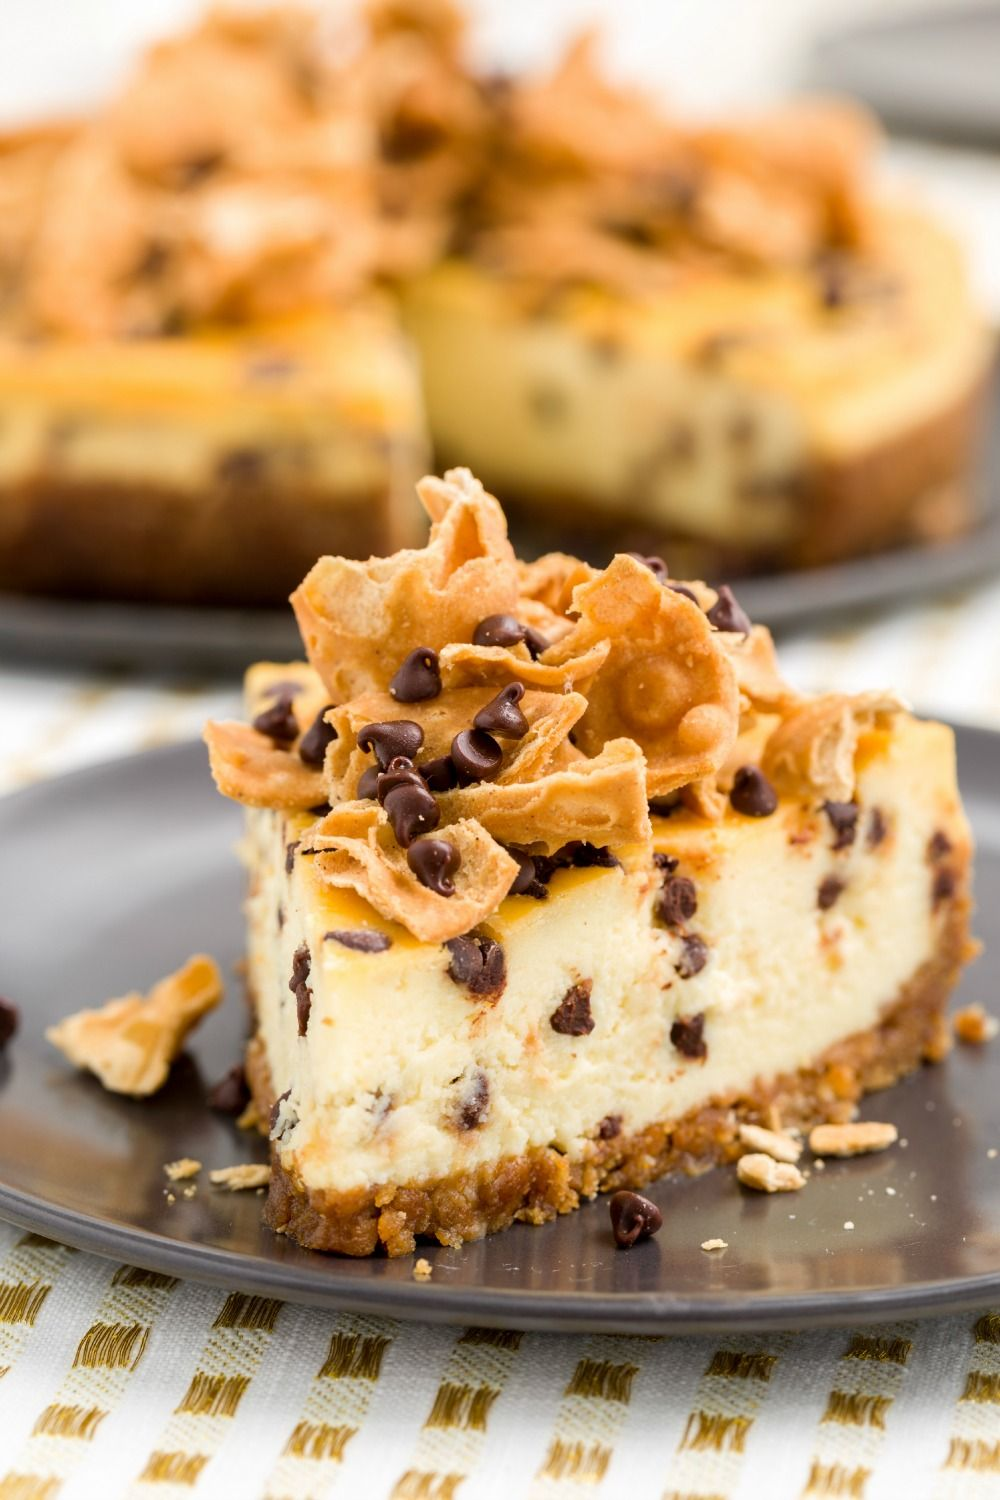 70 Easy Cheesecake Recipes Best Ways To Make Homemade Cheesecakes